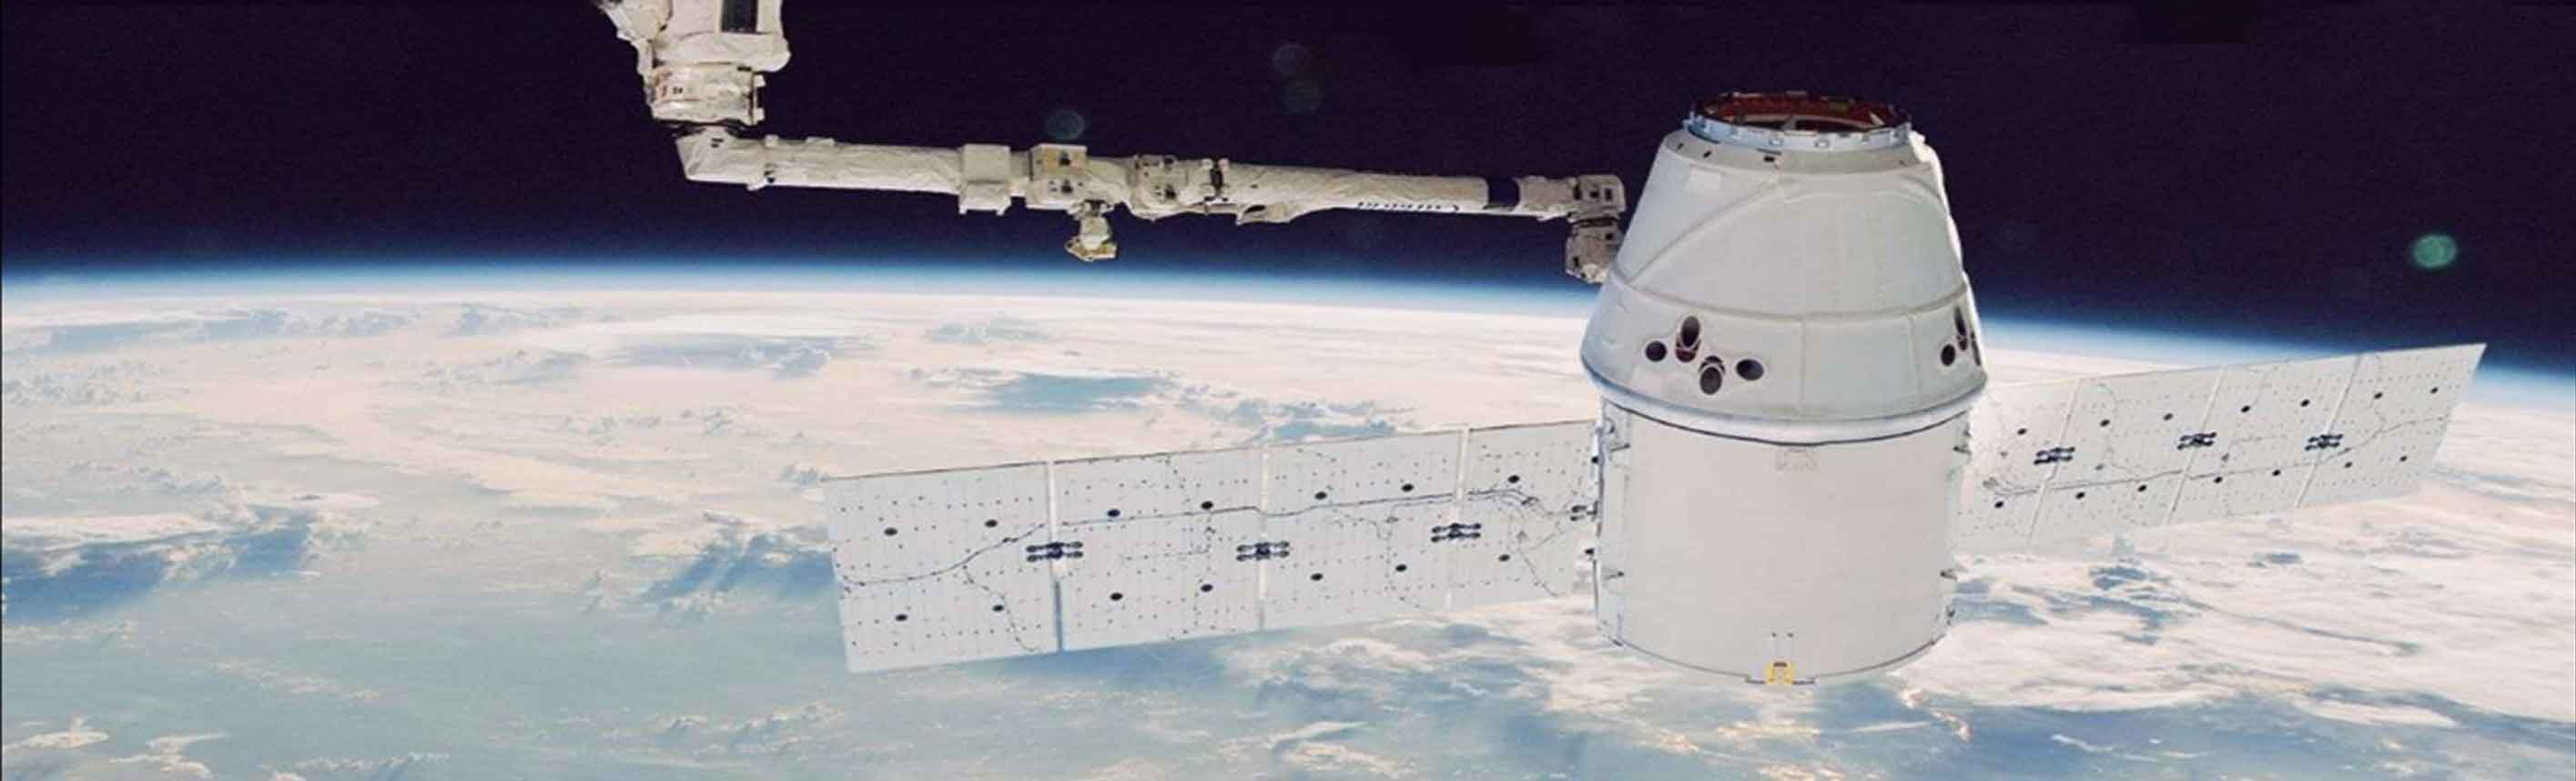 Image of space craft orbiting the earth with solar panels